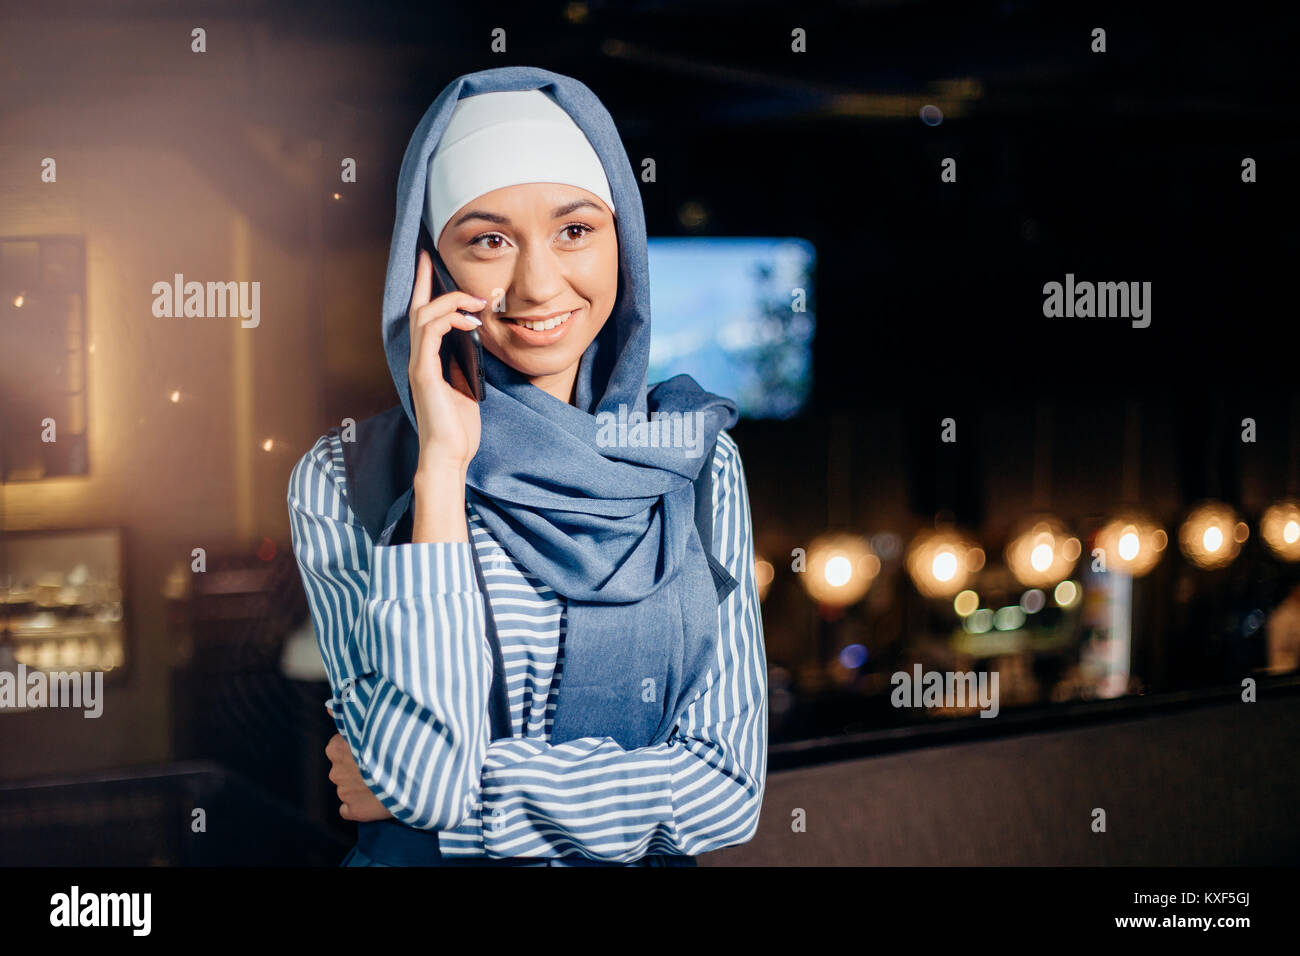 Muslim business woman on phone over conference - Stock Image